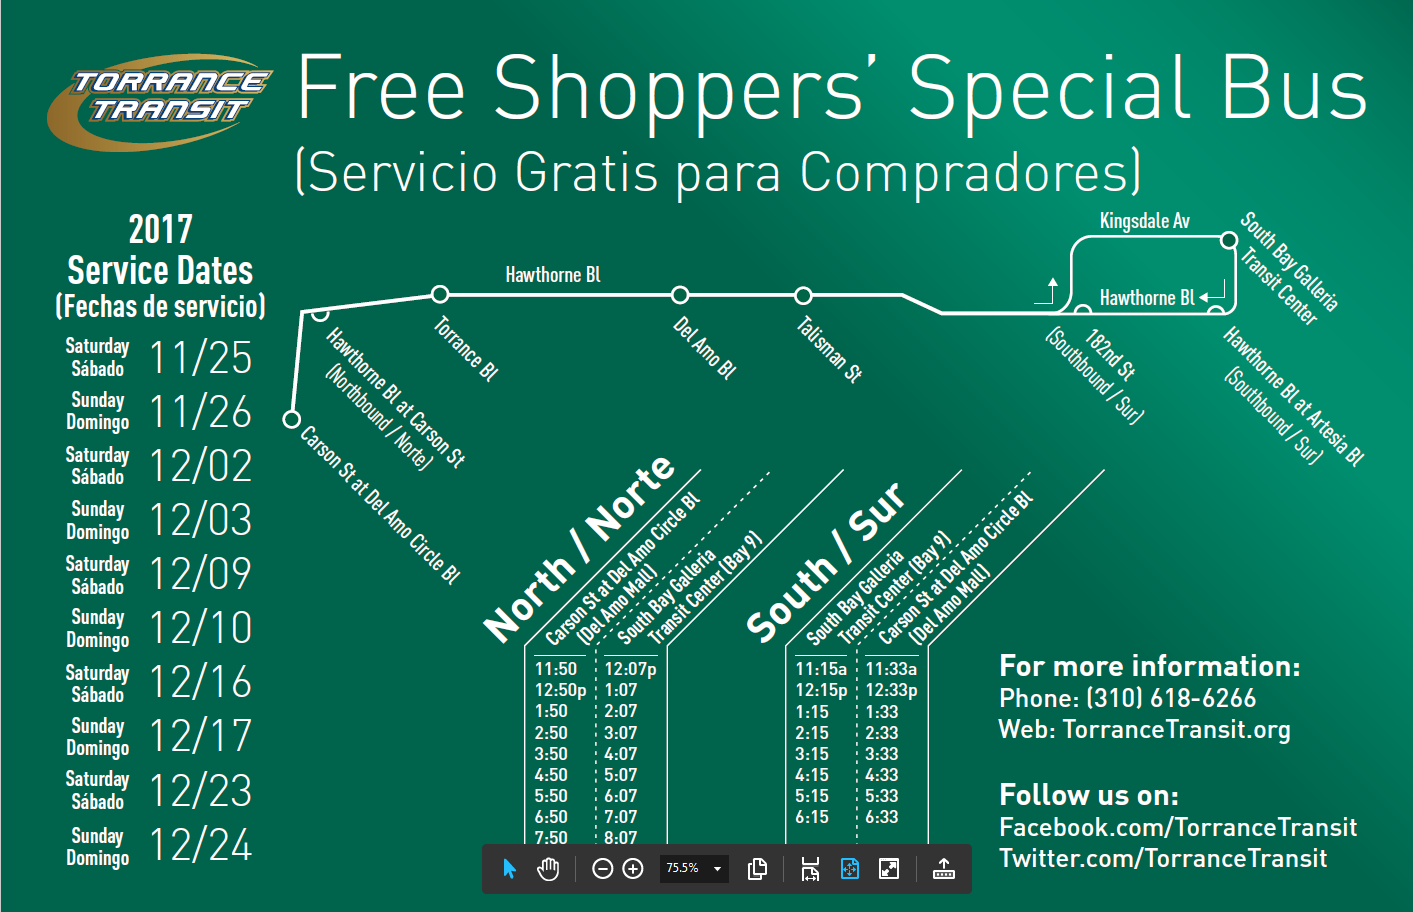 Shoppers' Special Service